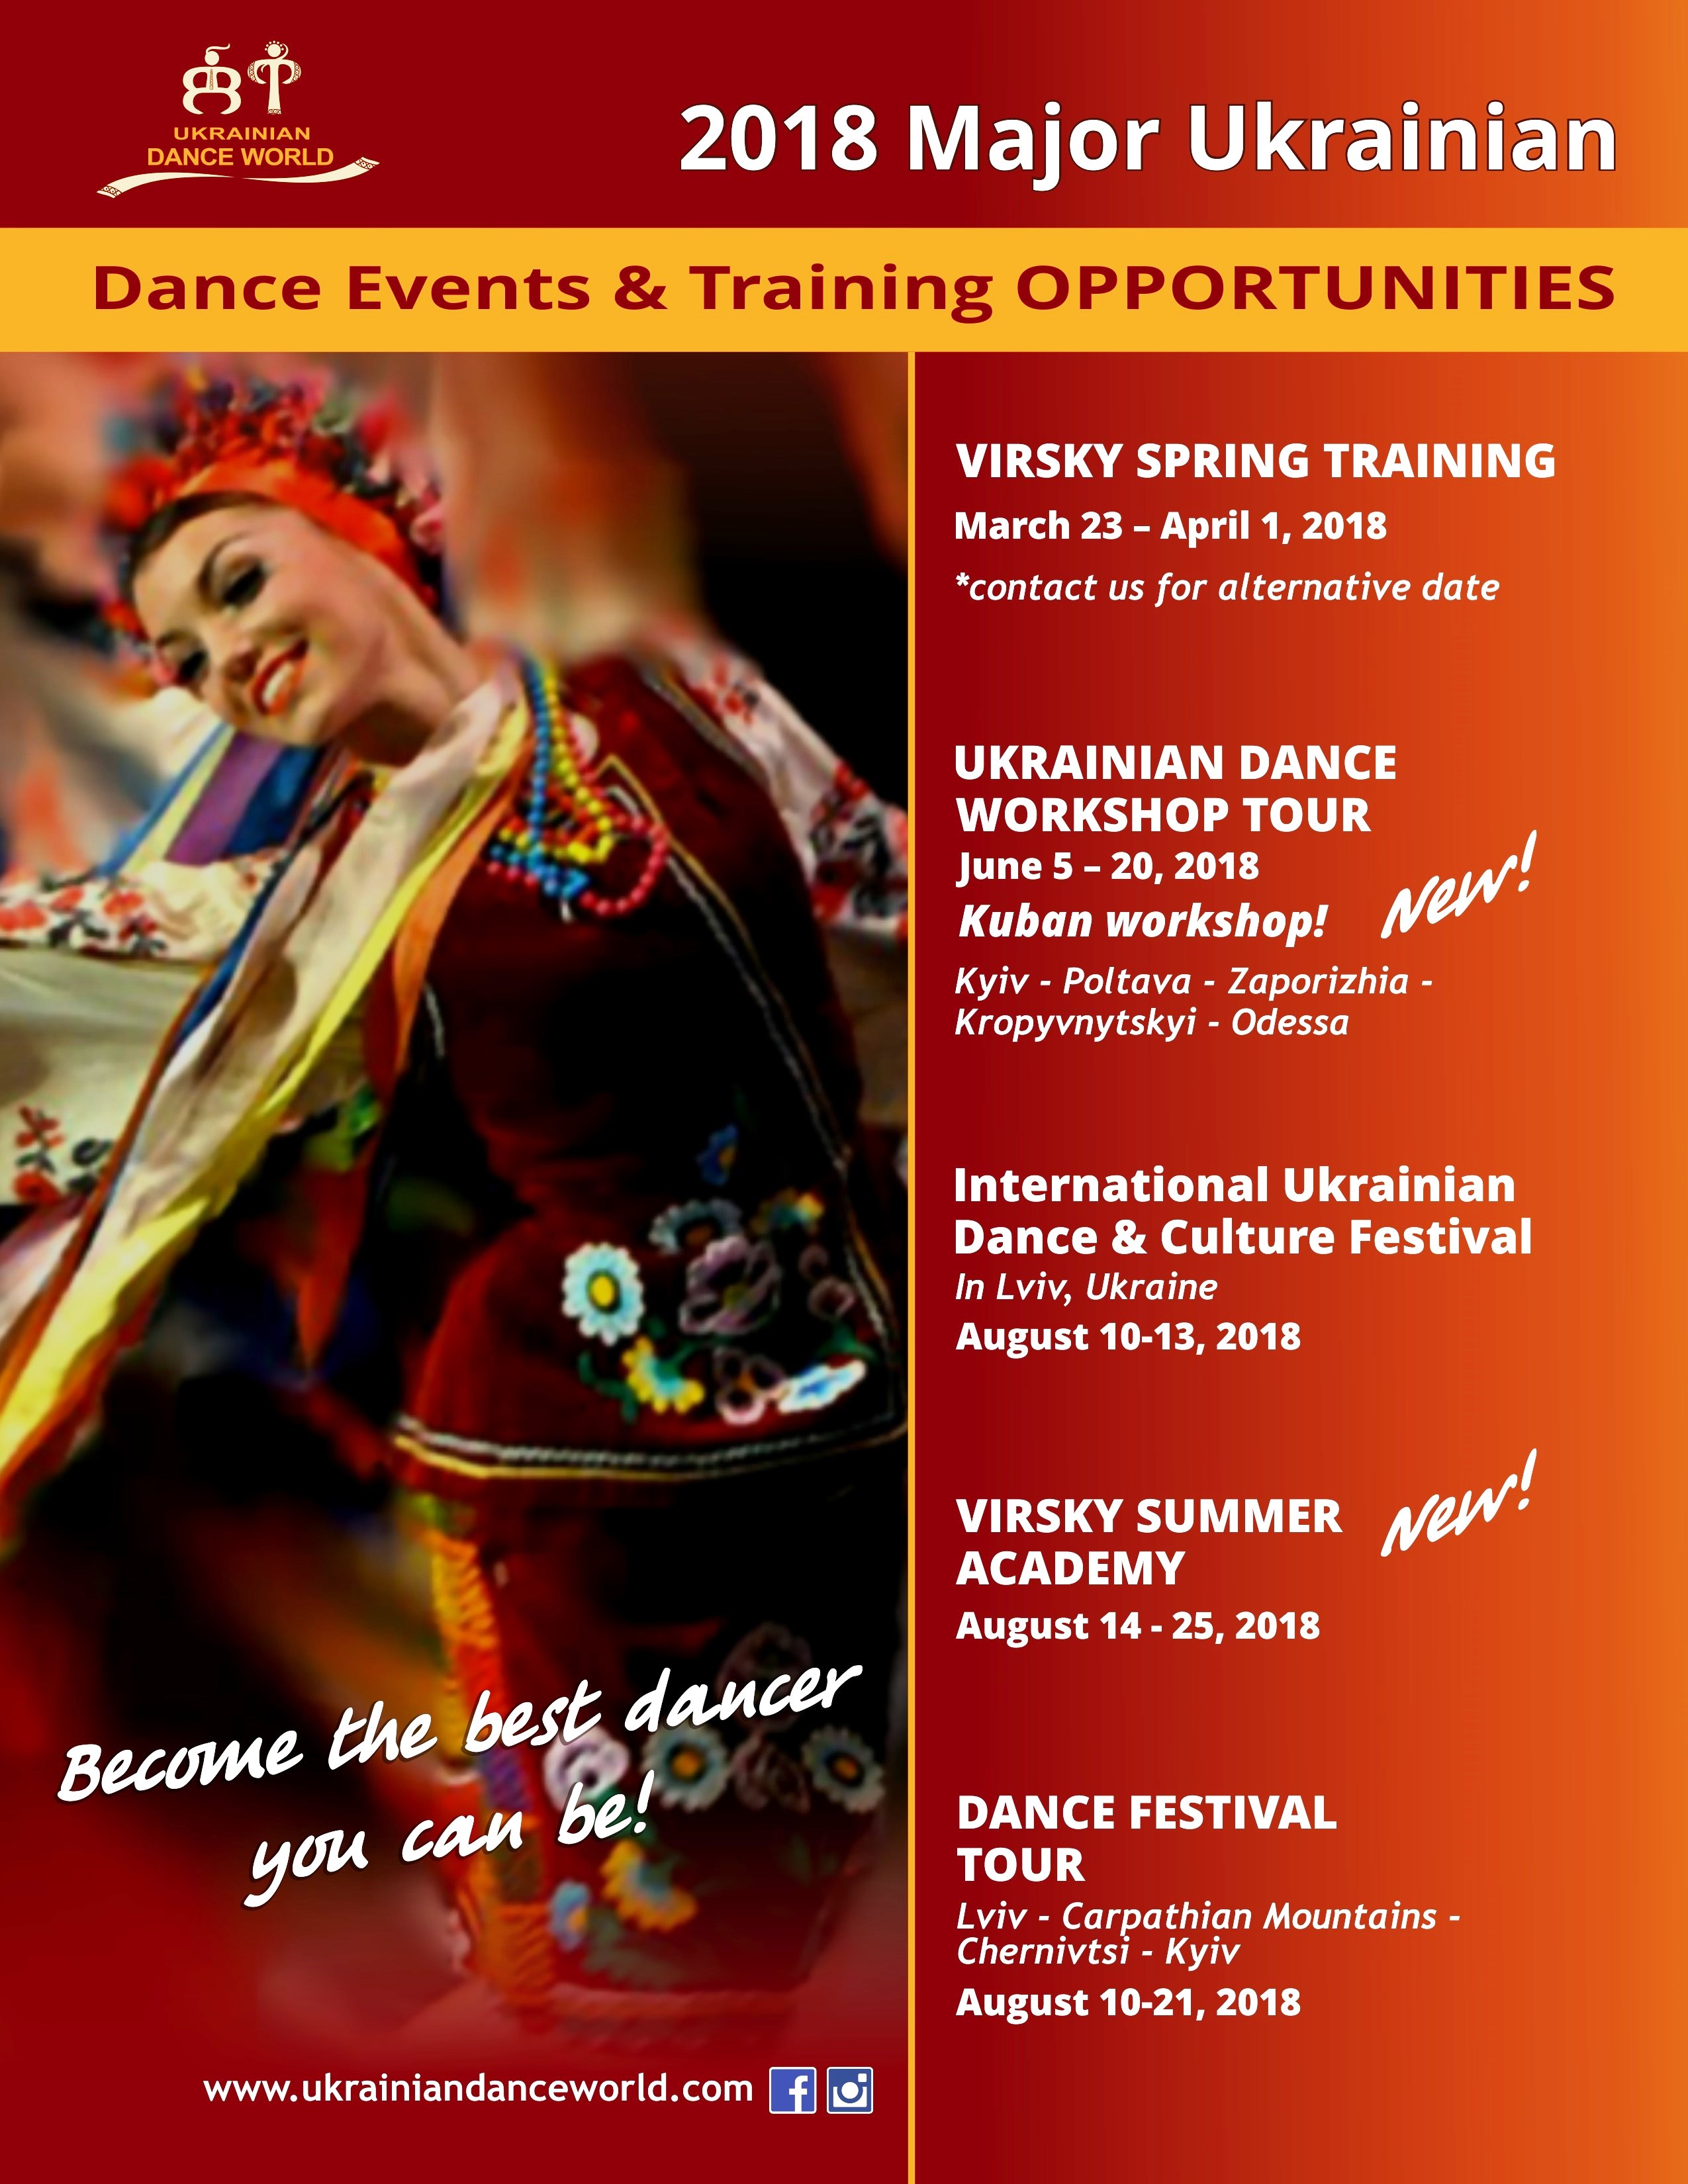 2018 Major Ukrainian Dance Events and Training Opportunities